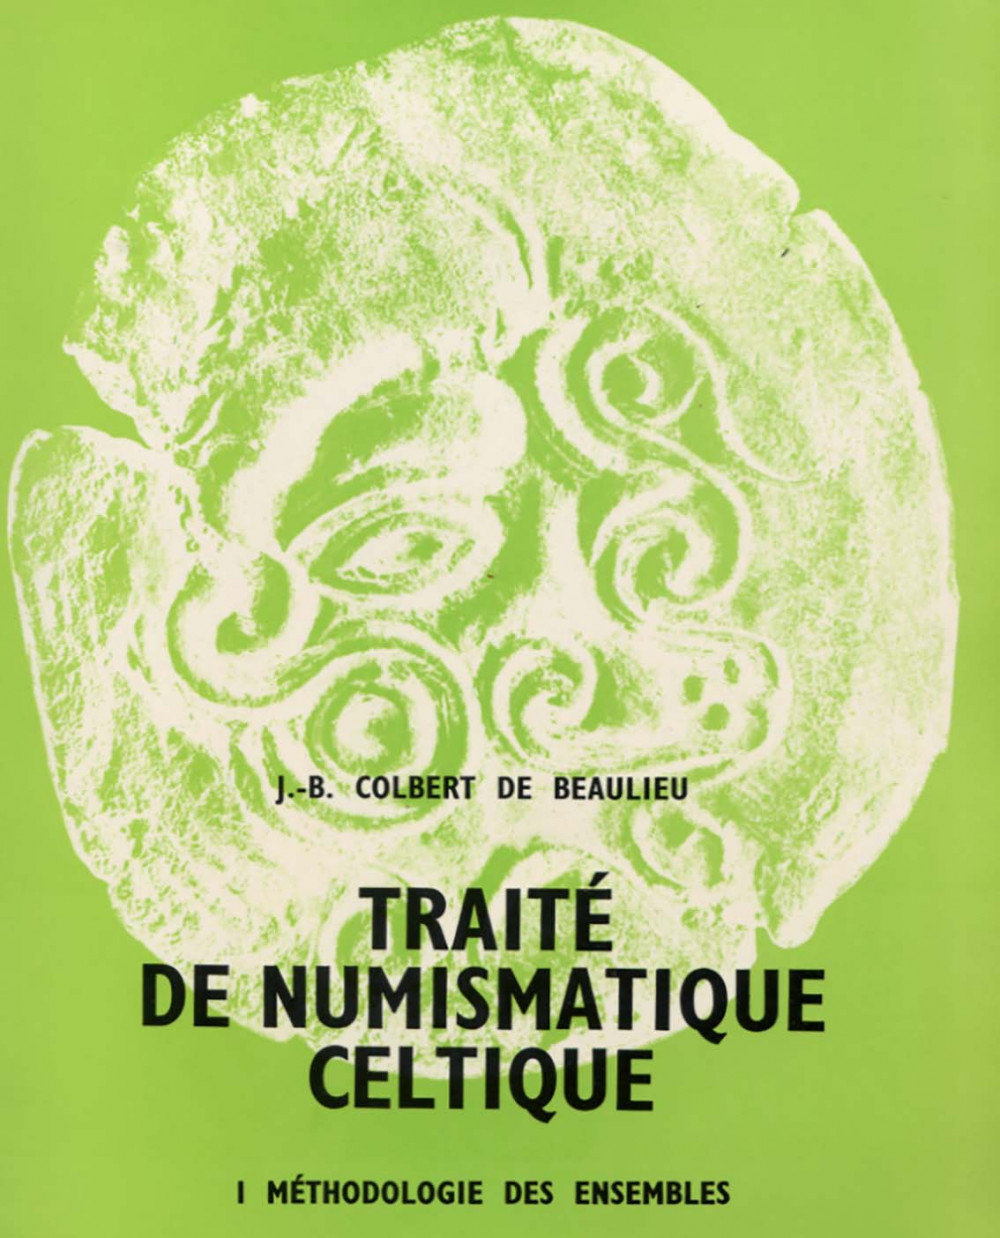 Traité de numismatique celtique. I